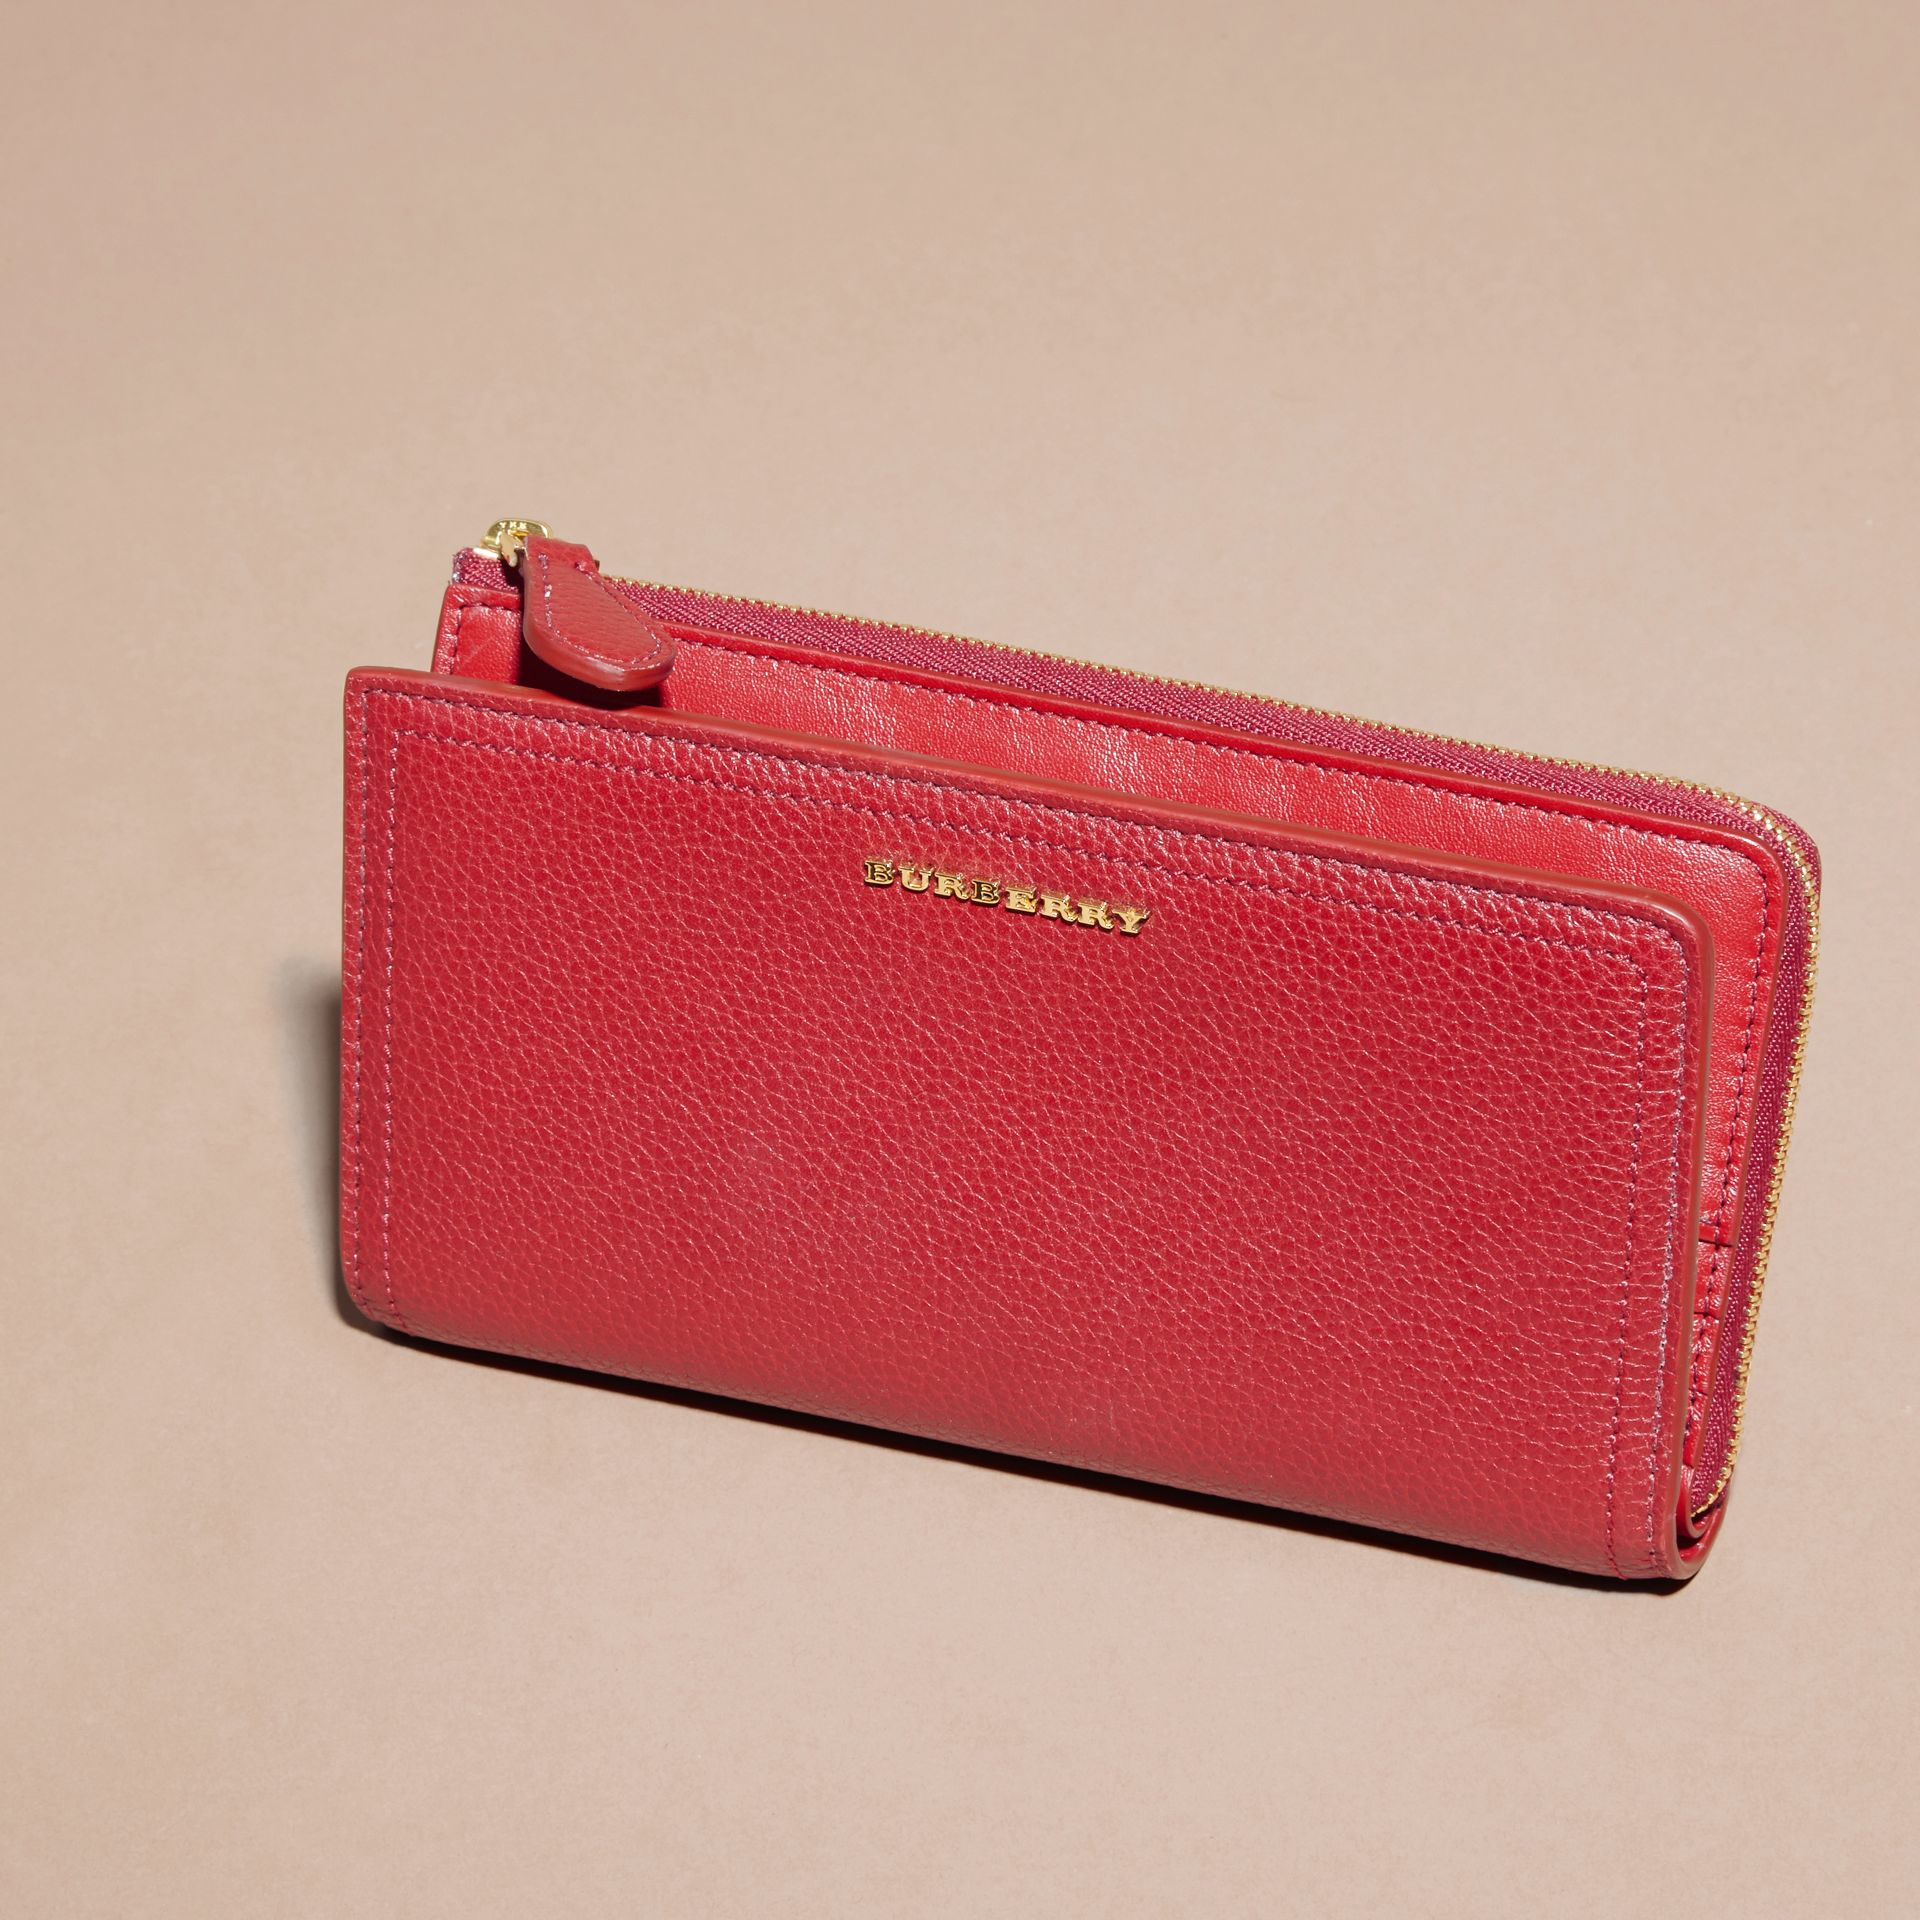 Grainy Leather Ziparound Wallet in Parade Red - Women | Burberry - gallery image 6